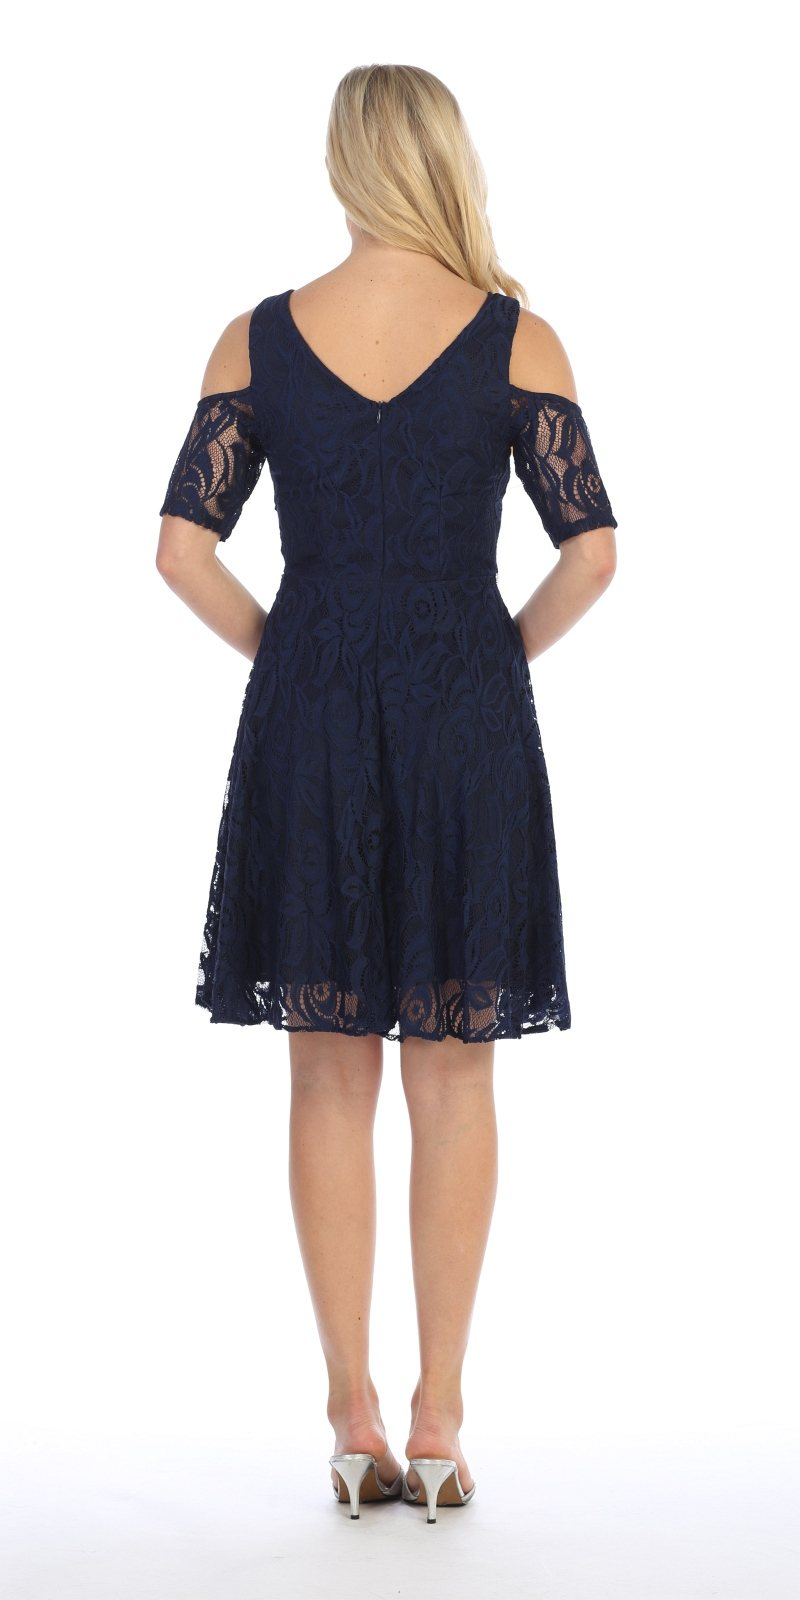 8d8533be926 ... Celavie 6307 Navy Blue Lace A-Line Wedding Guest Dress Cold Shoulder  Short Sleeves Back ...